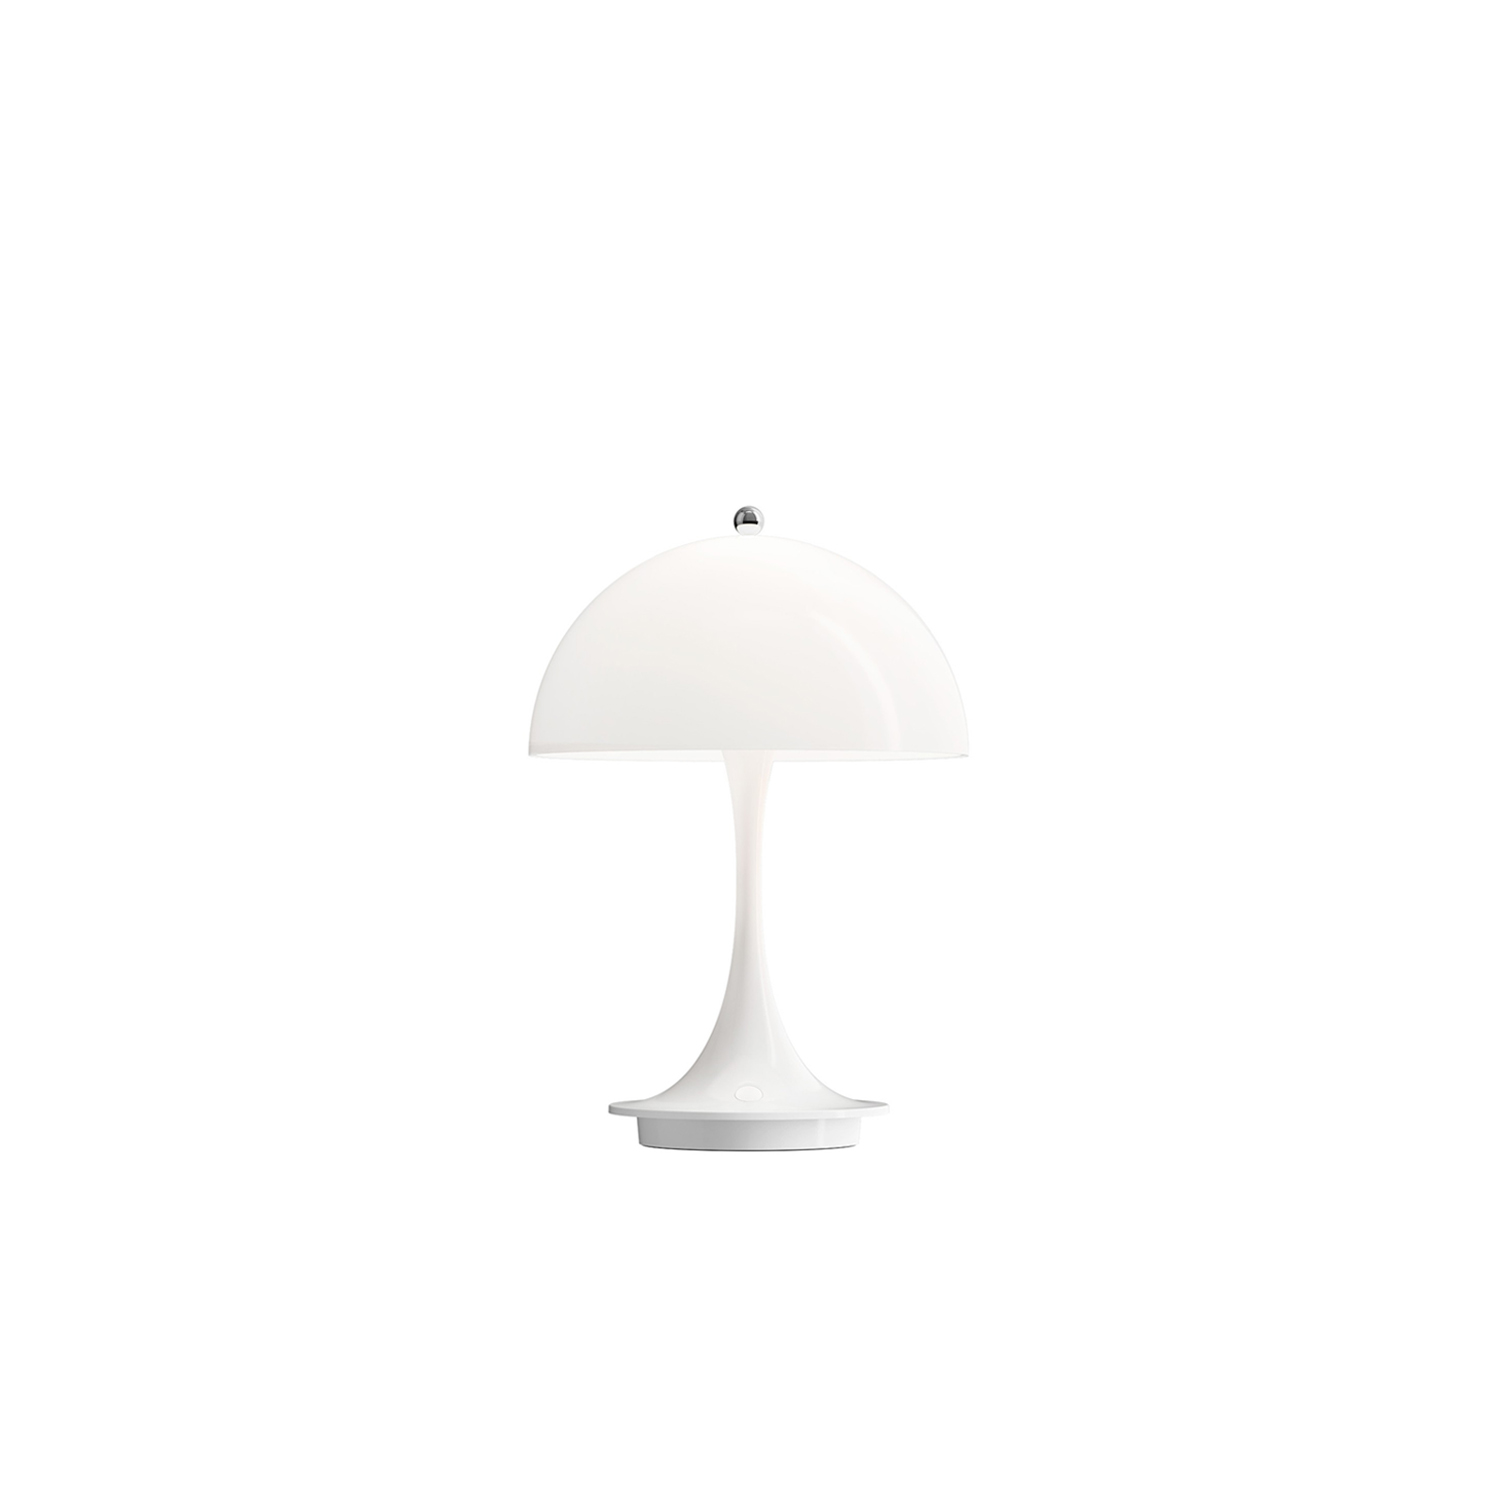 Panthella Cordless Table Lamp - The fixture lights up any space harmoniously without glare. The portable table lamp is available in opal, and the transparency of the shade and the reflection of the downward light on the inner side of the shade provides a gentle light and subtle ambience. The Panthella Portable comes with a USB-cable but without an adapter. Separate USB-Adapter is available as an accessory. The lamp is fitted with an integrated energy-saving LED light source. | Matter of Stuff